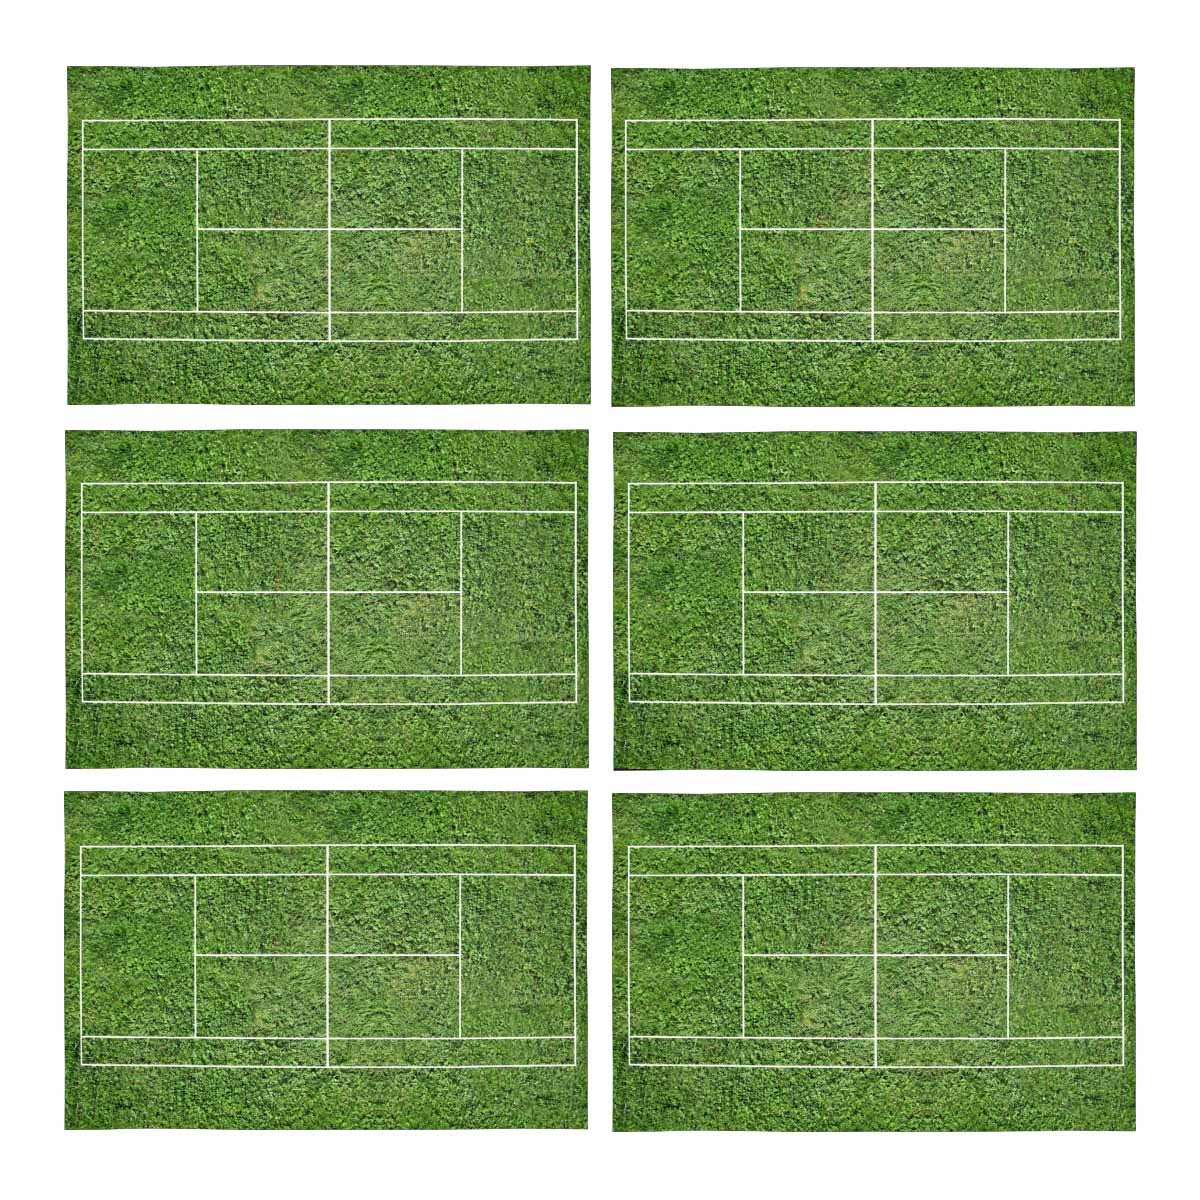 Mkhert Funny Green Tennis Court Placemats Table Mats For